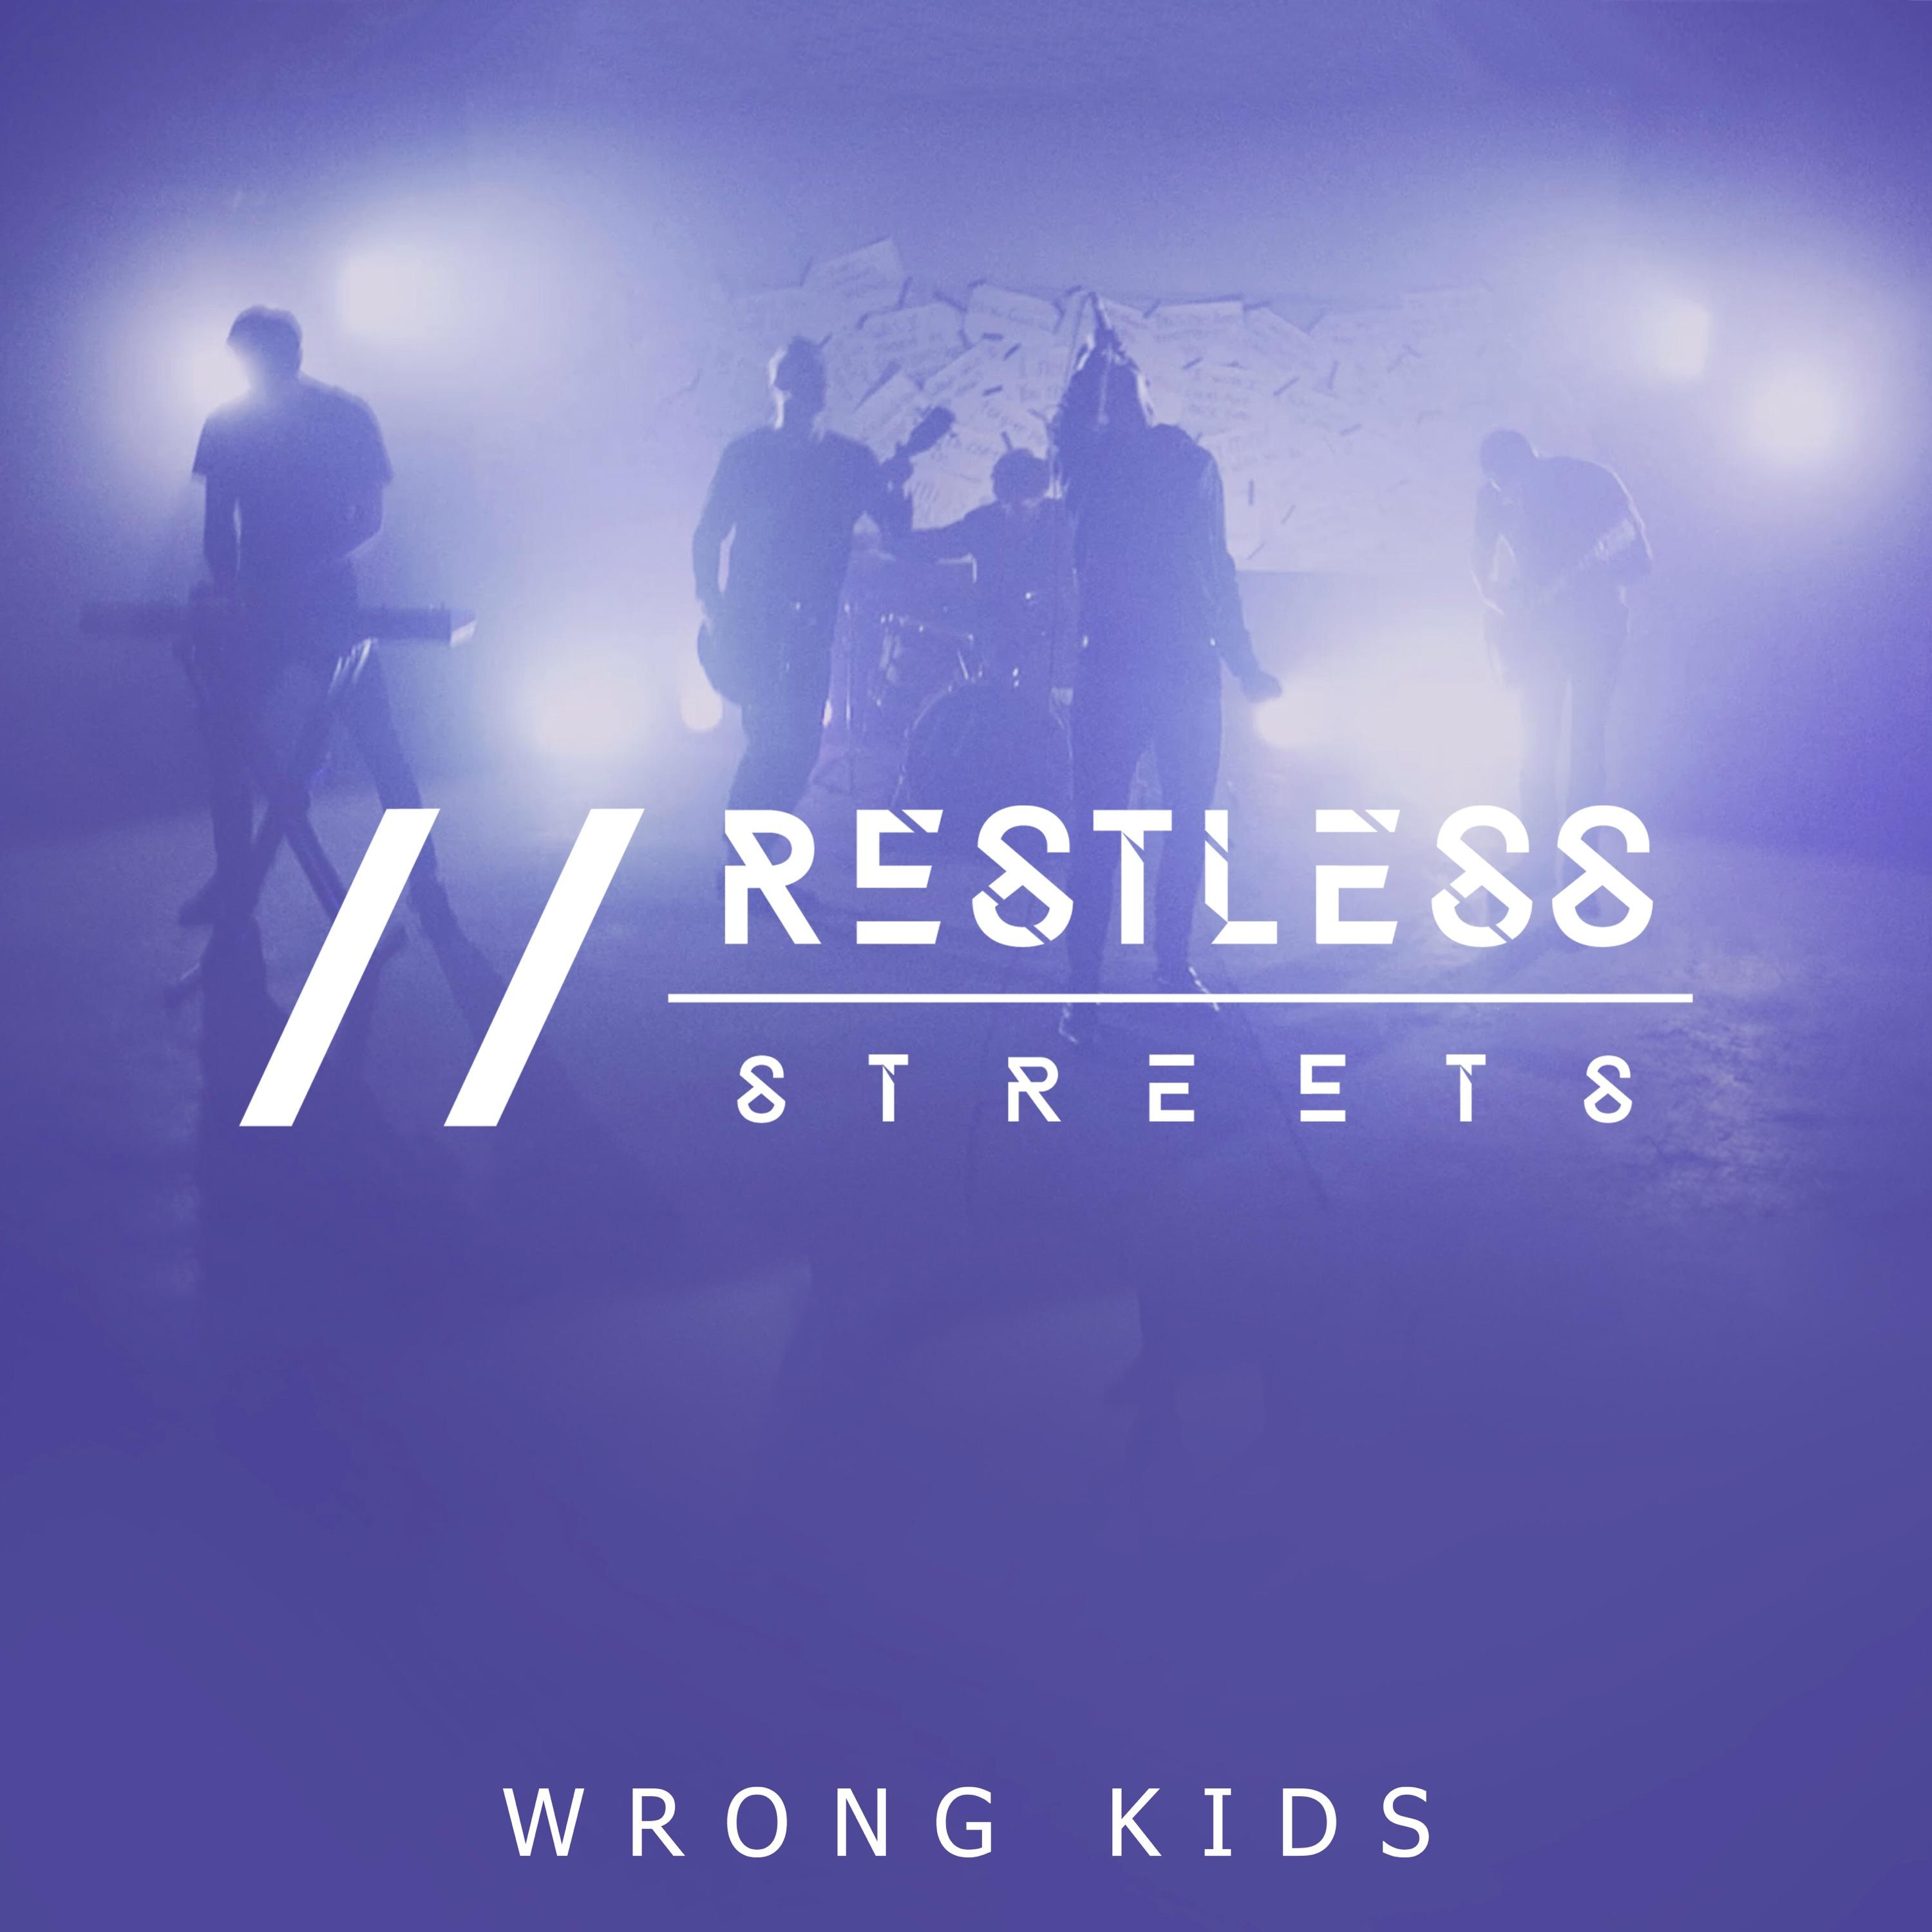 Restless Streets - Wrong Kids [single] (2017)